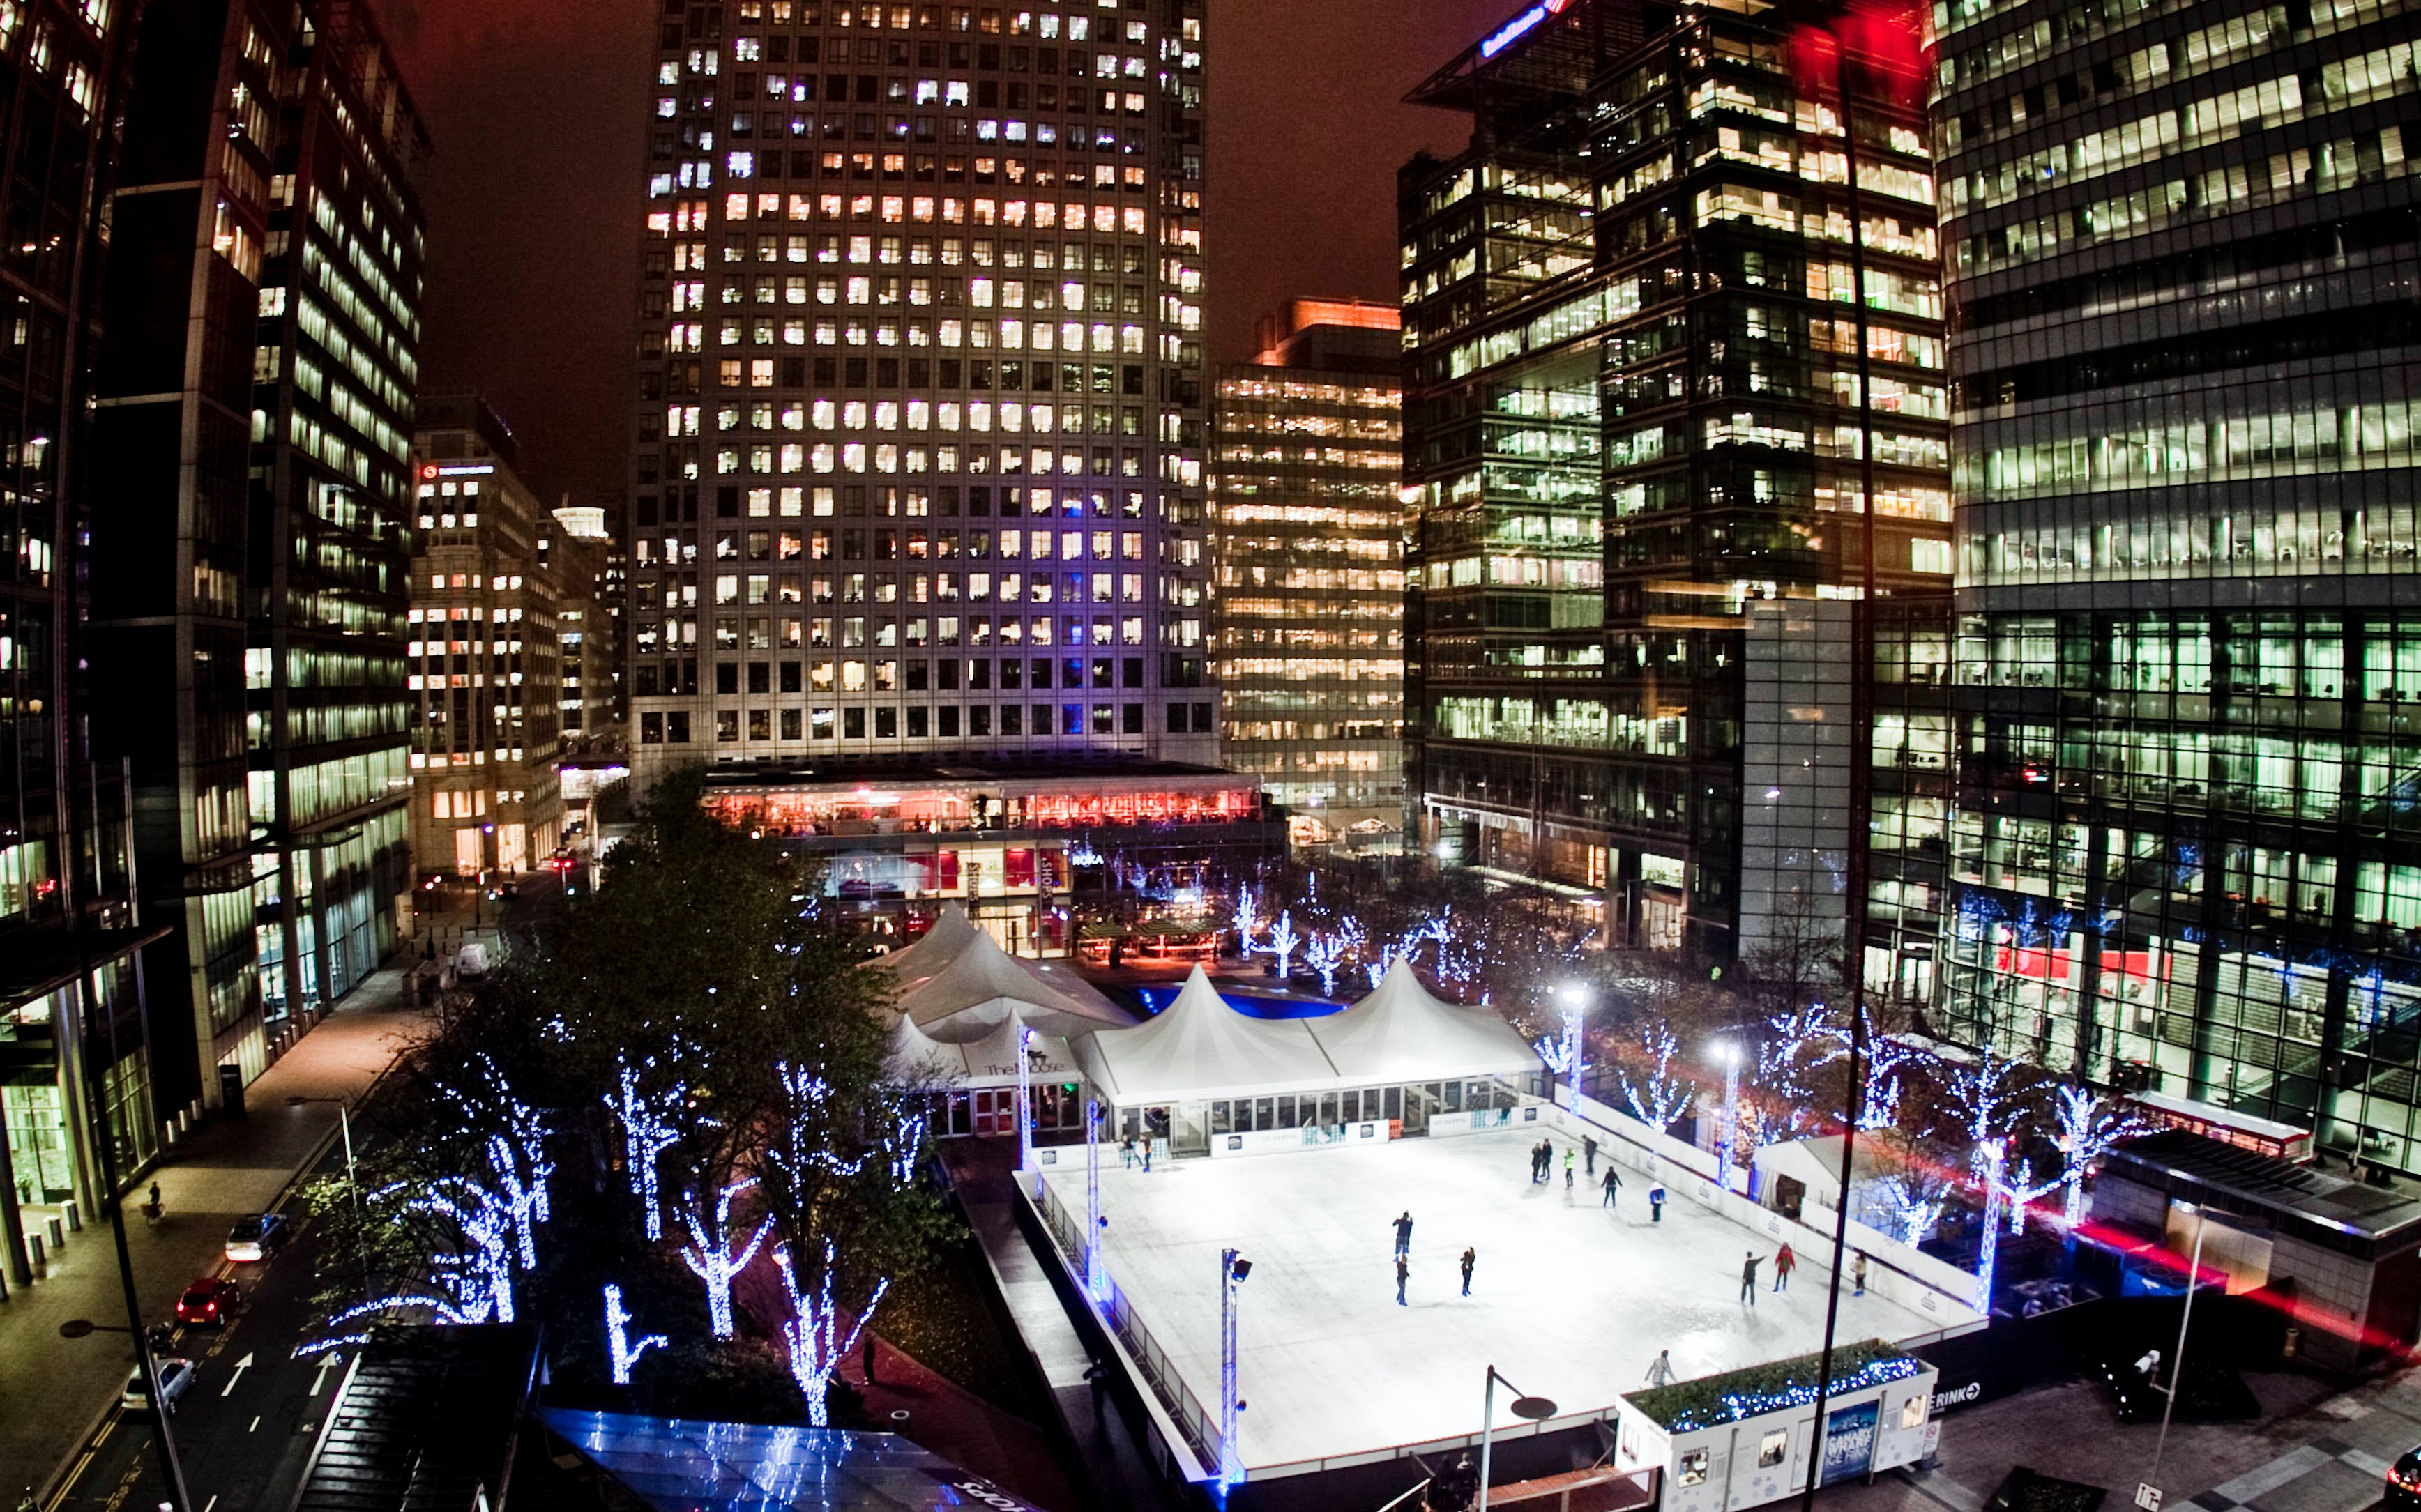 christmas magic at the canary wharf ice rink-1